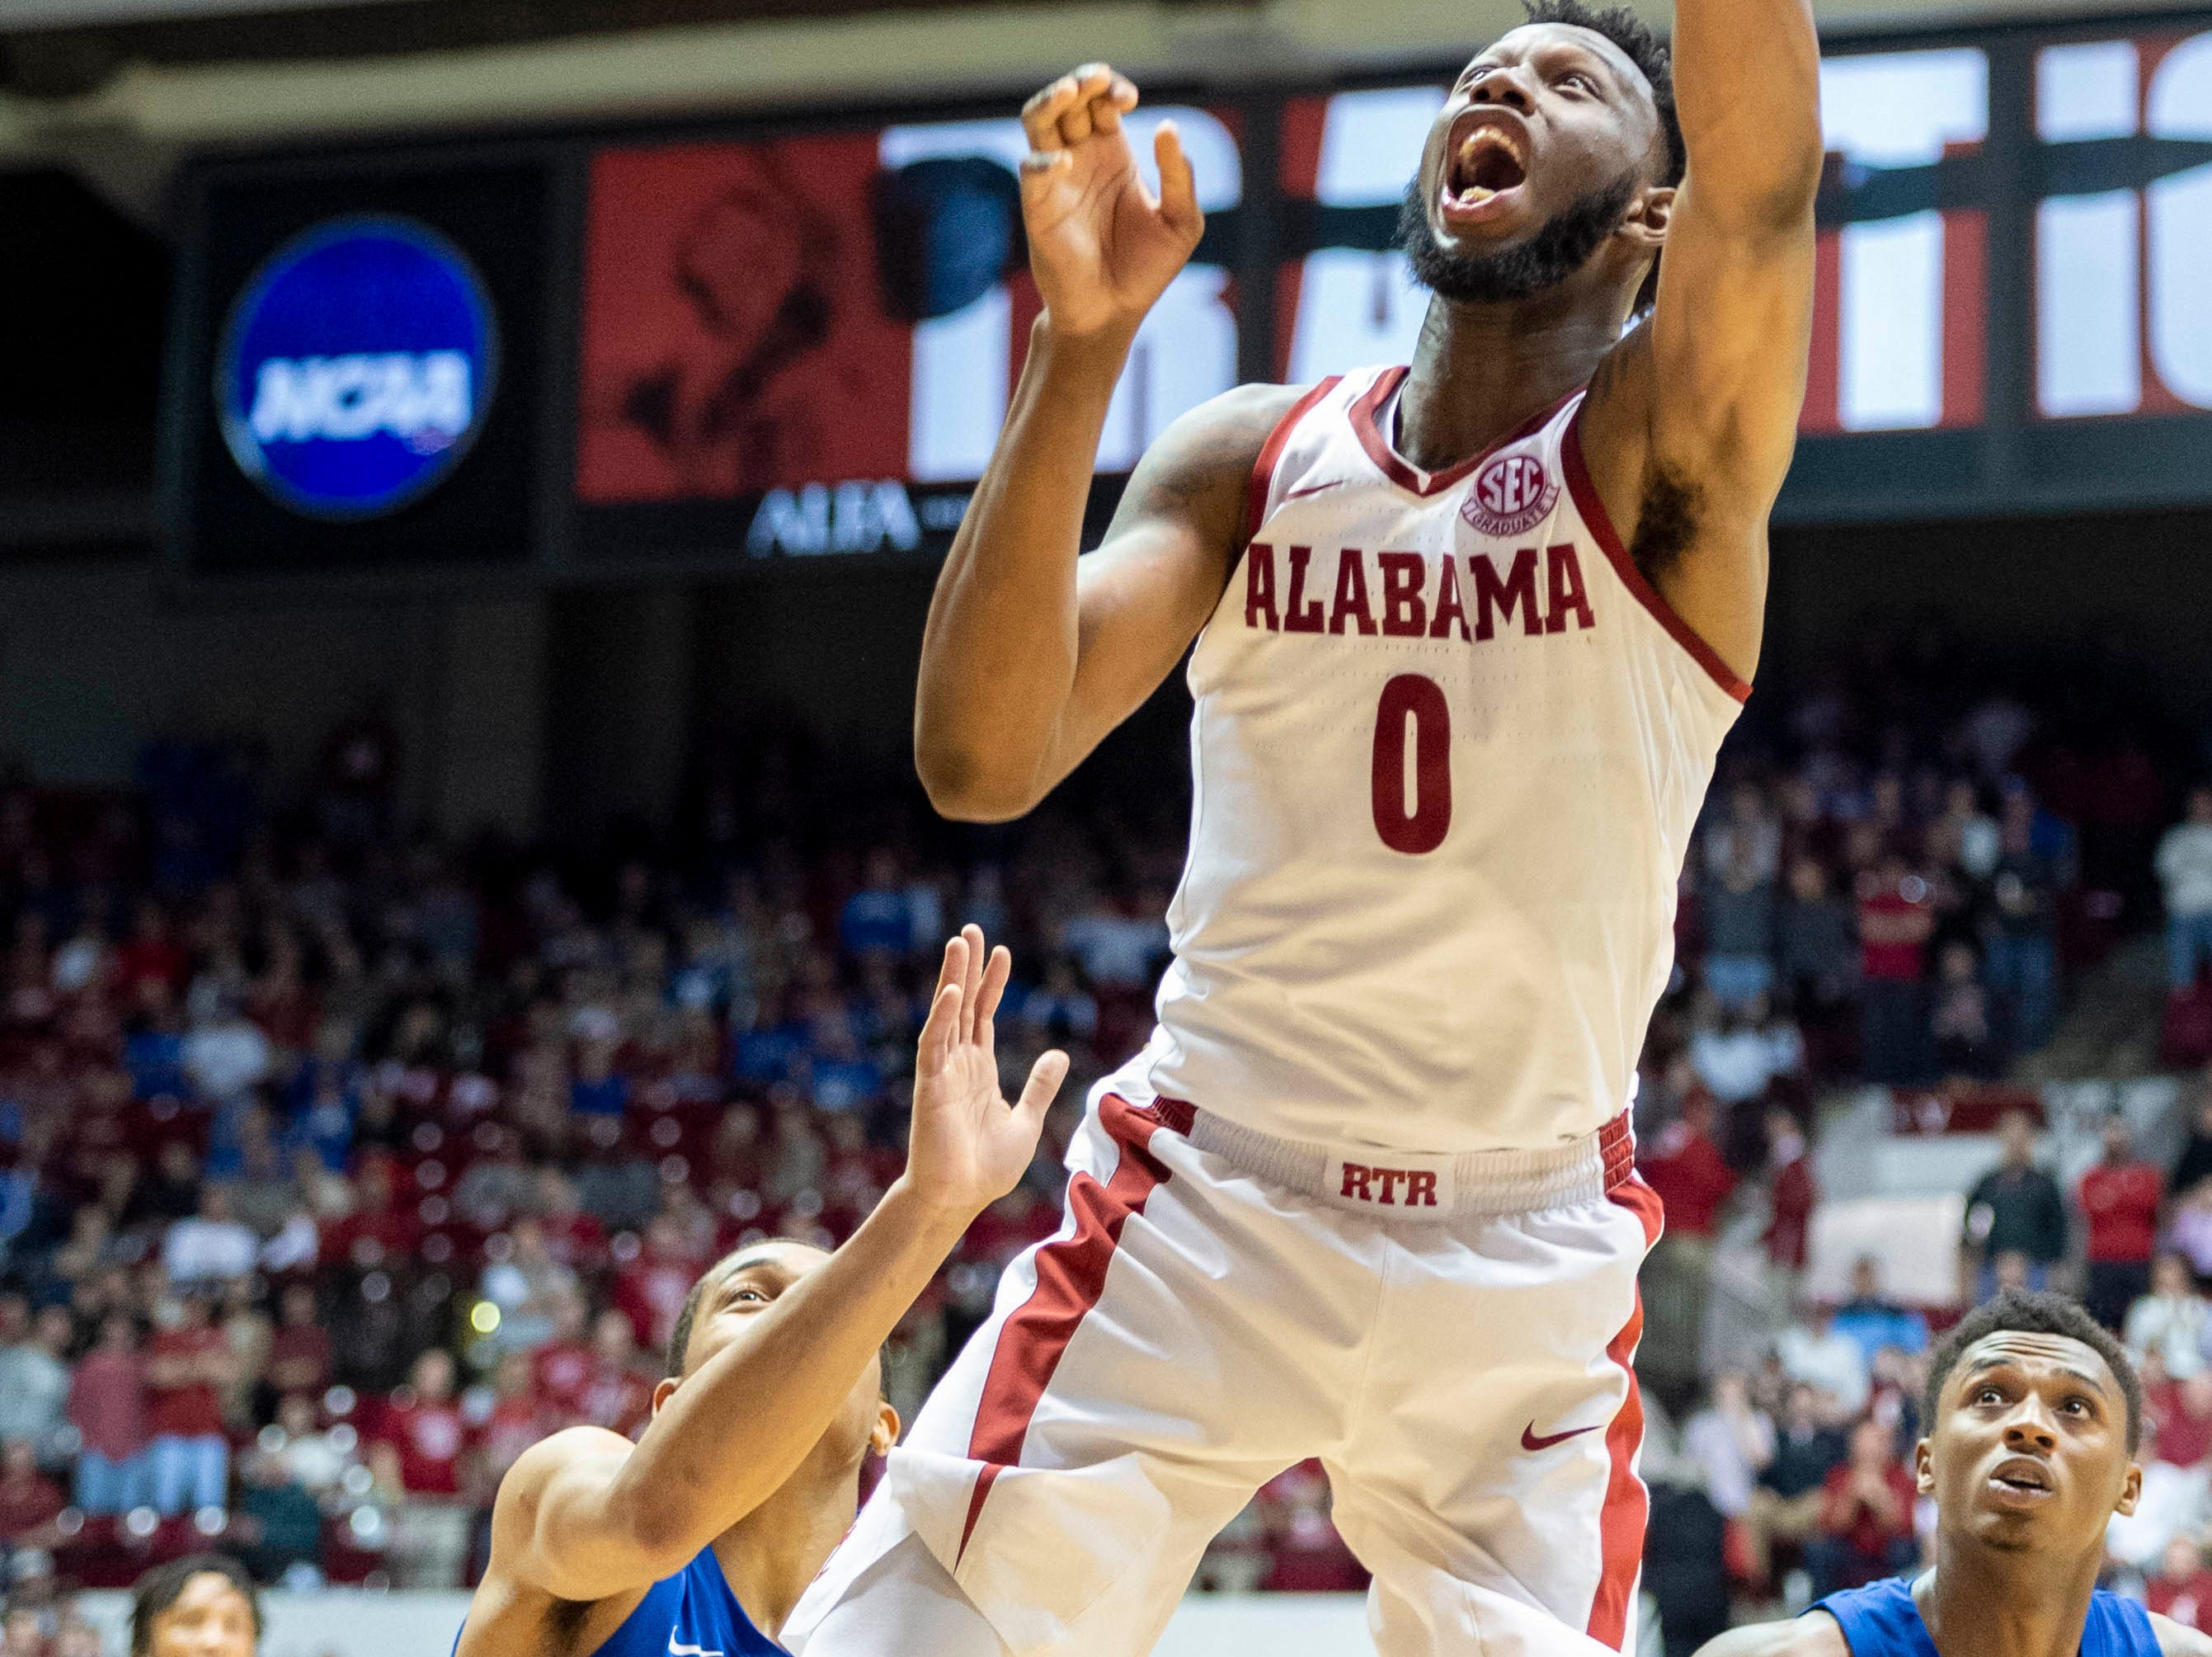 Alabama forward Donta Hall (0) tips in a rebound for two against Kentucky during the second half of an NCAA college basketball game, Saturday, Jan. 5, 2019, in Tuscaloosa, Ala.